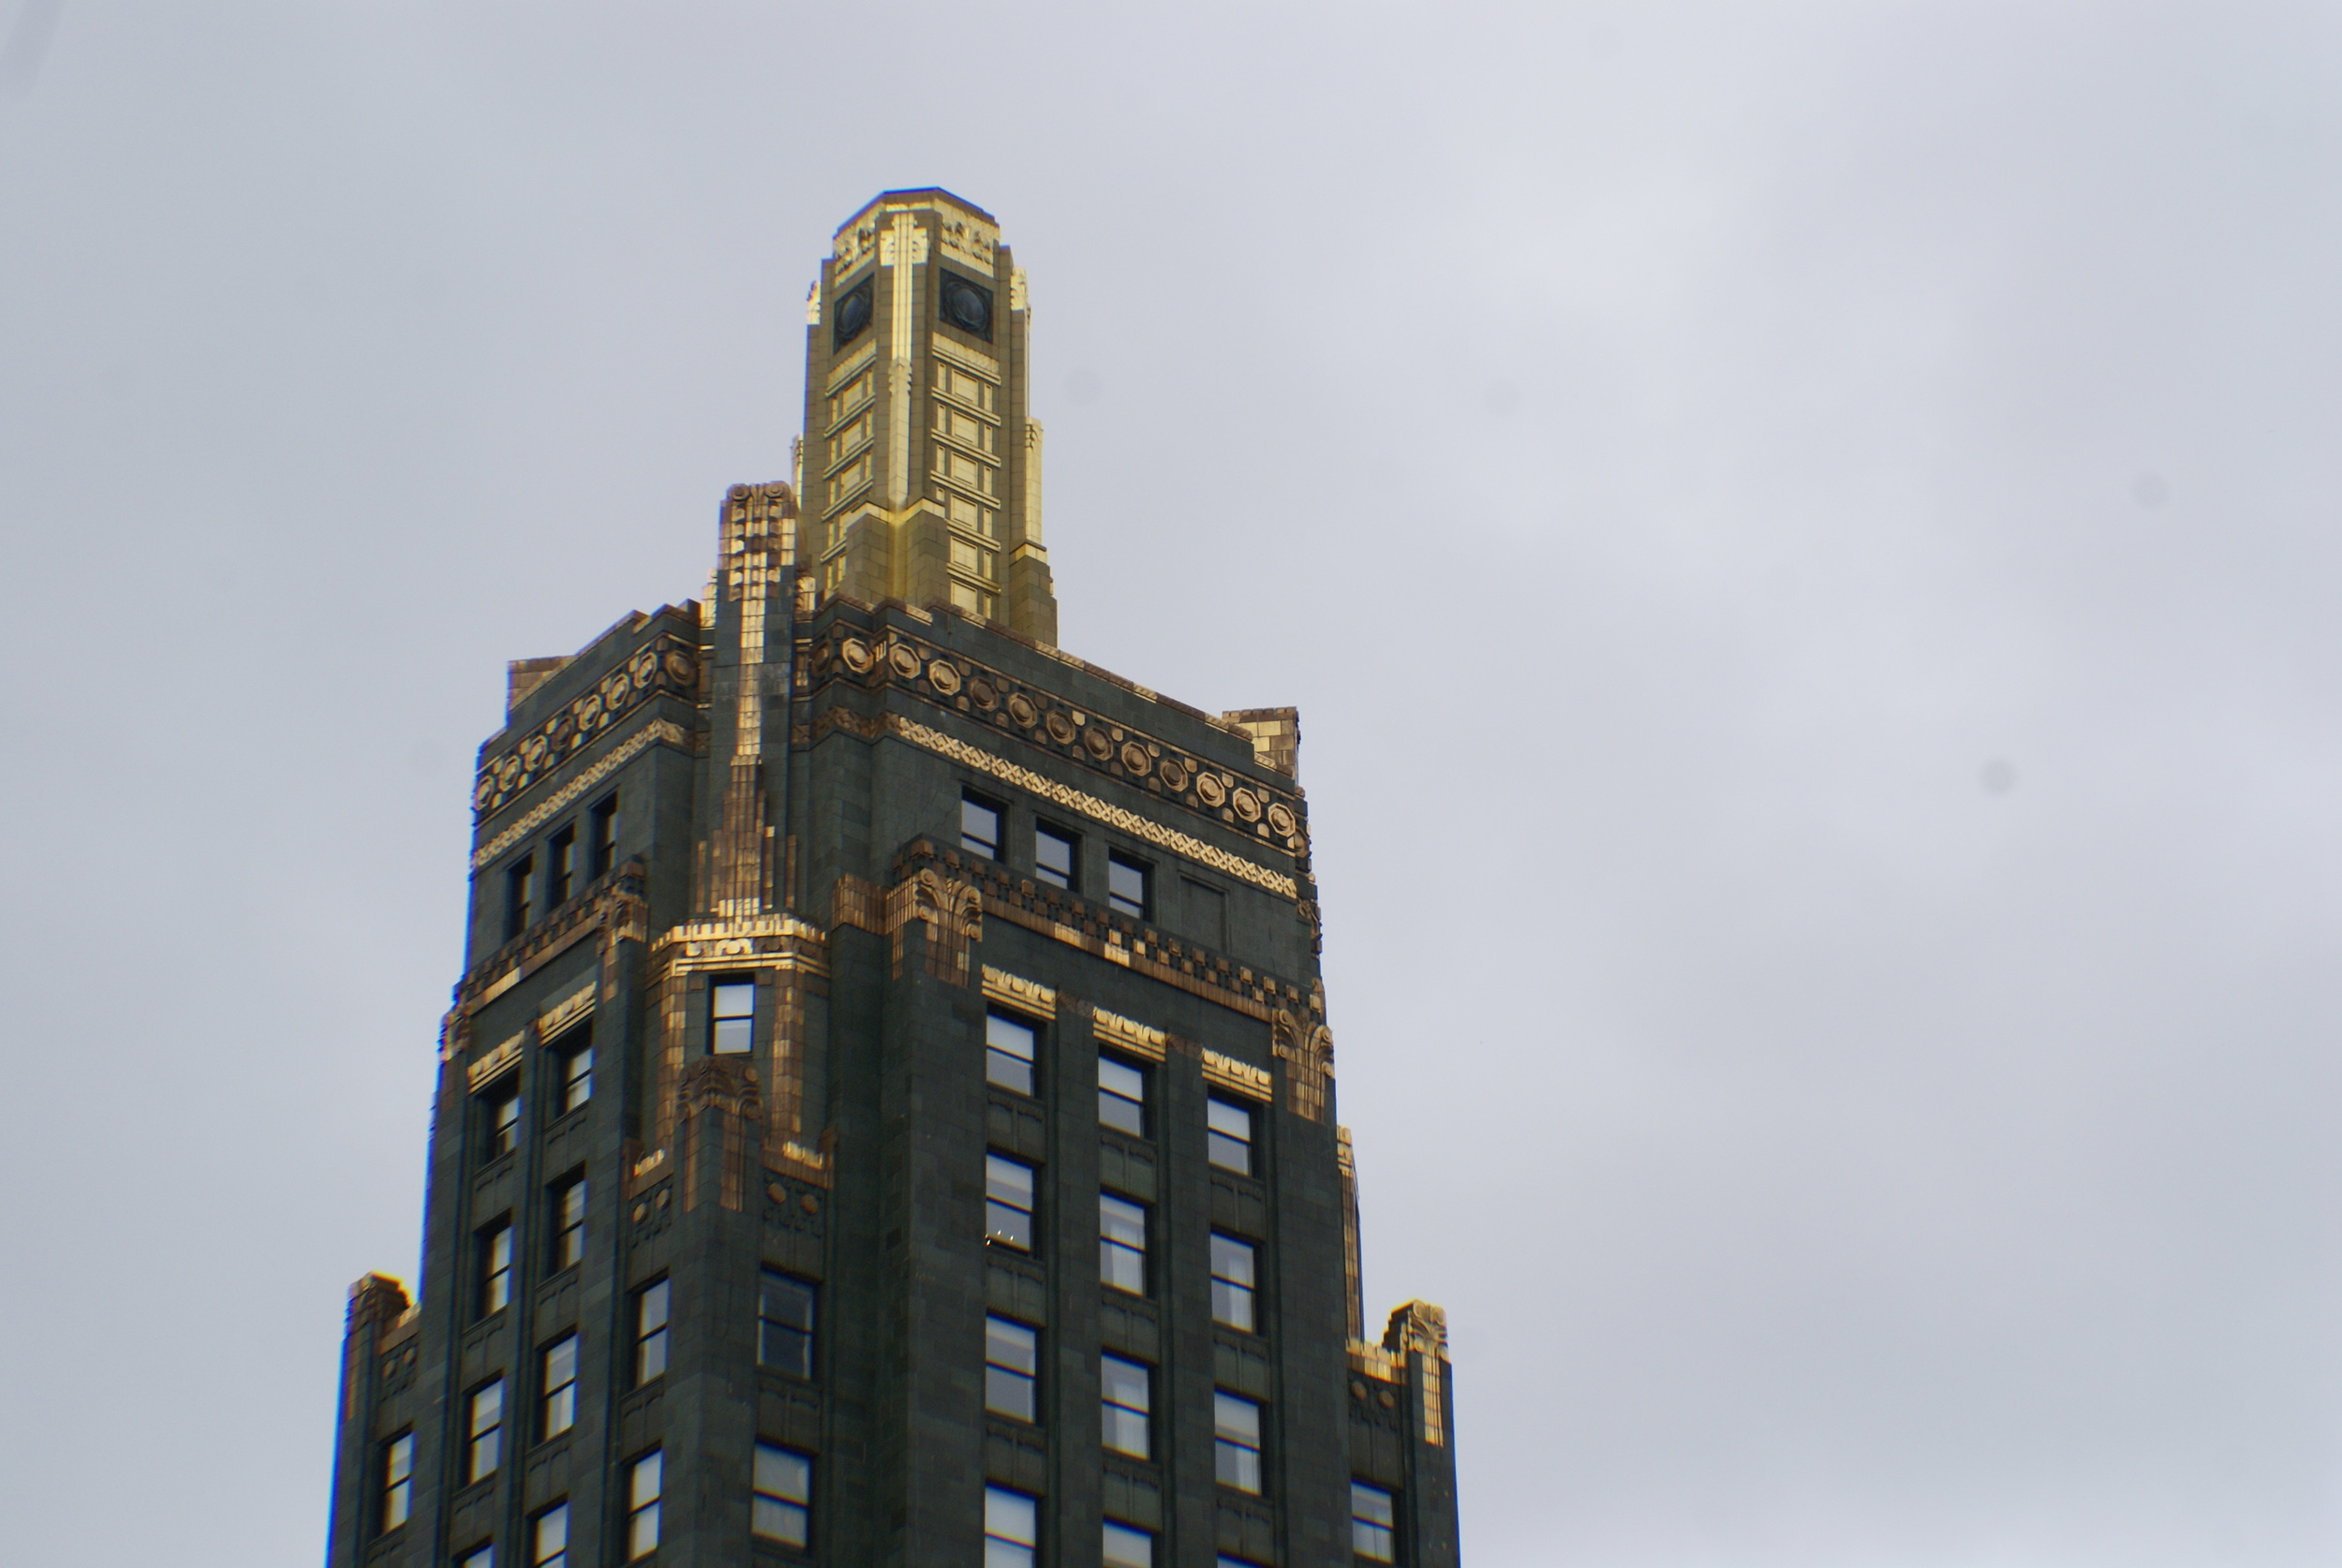 Top of the Carbon & Carbide building from the Skyline Club